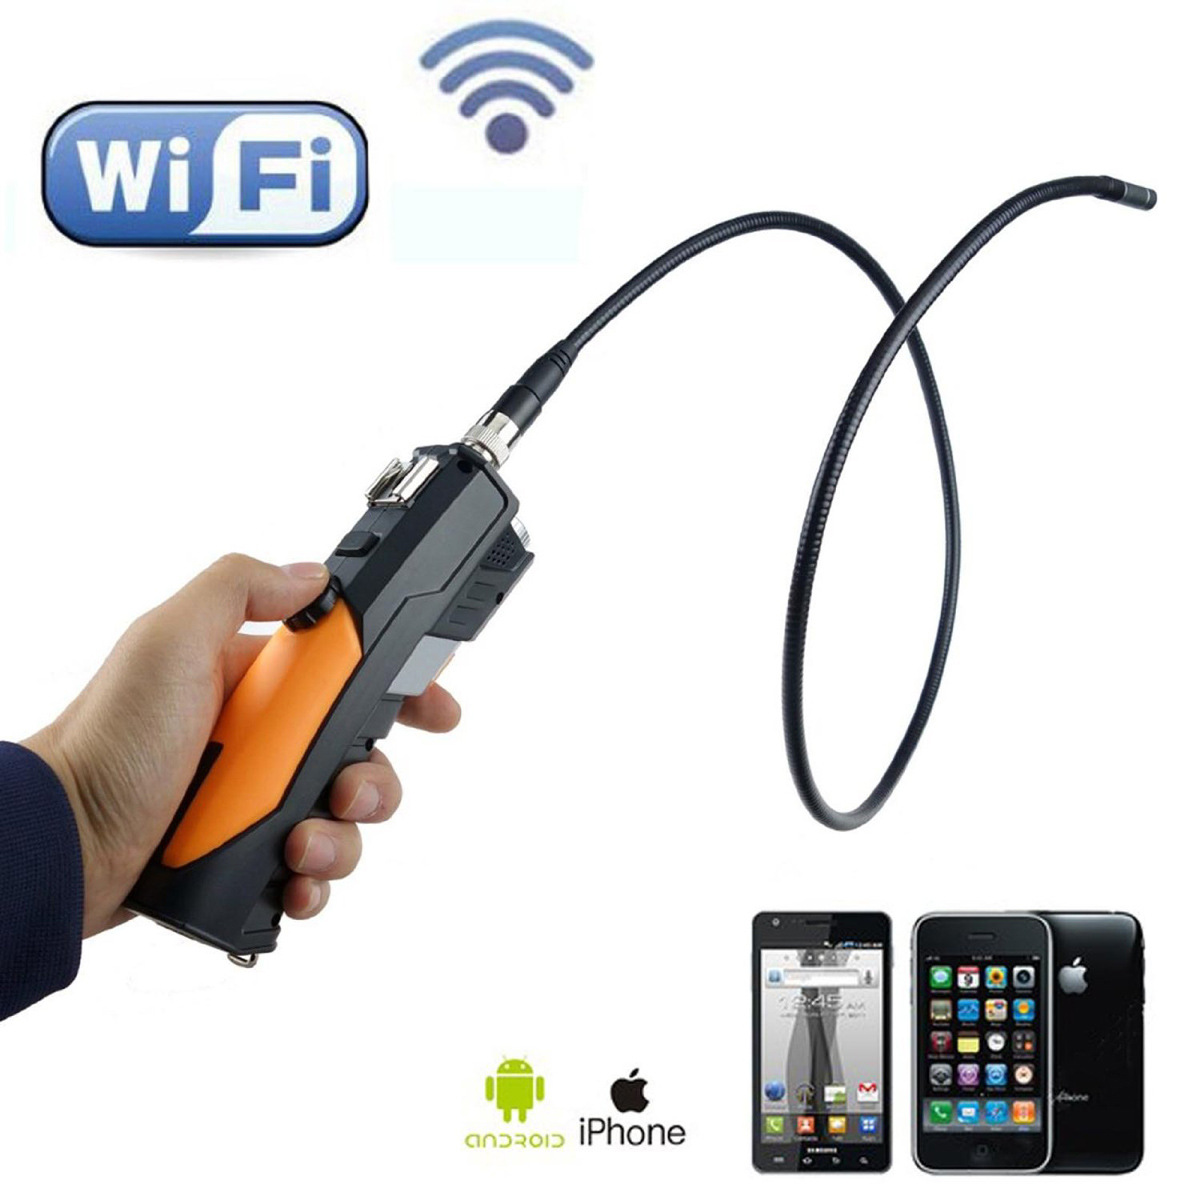 For 1M Hand-held WiFi HD720p Wireless Endoscope Video Borescope Camera 4 PC iOS Android Tablet 1pc 5m wifi endoscope new camera 8mm hd lens usb iphone android borescope ios tablet wireless borescope endoscope wifi